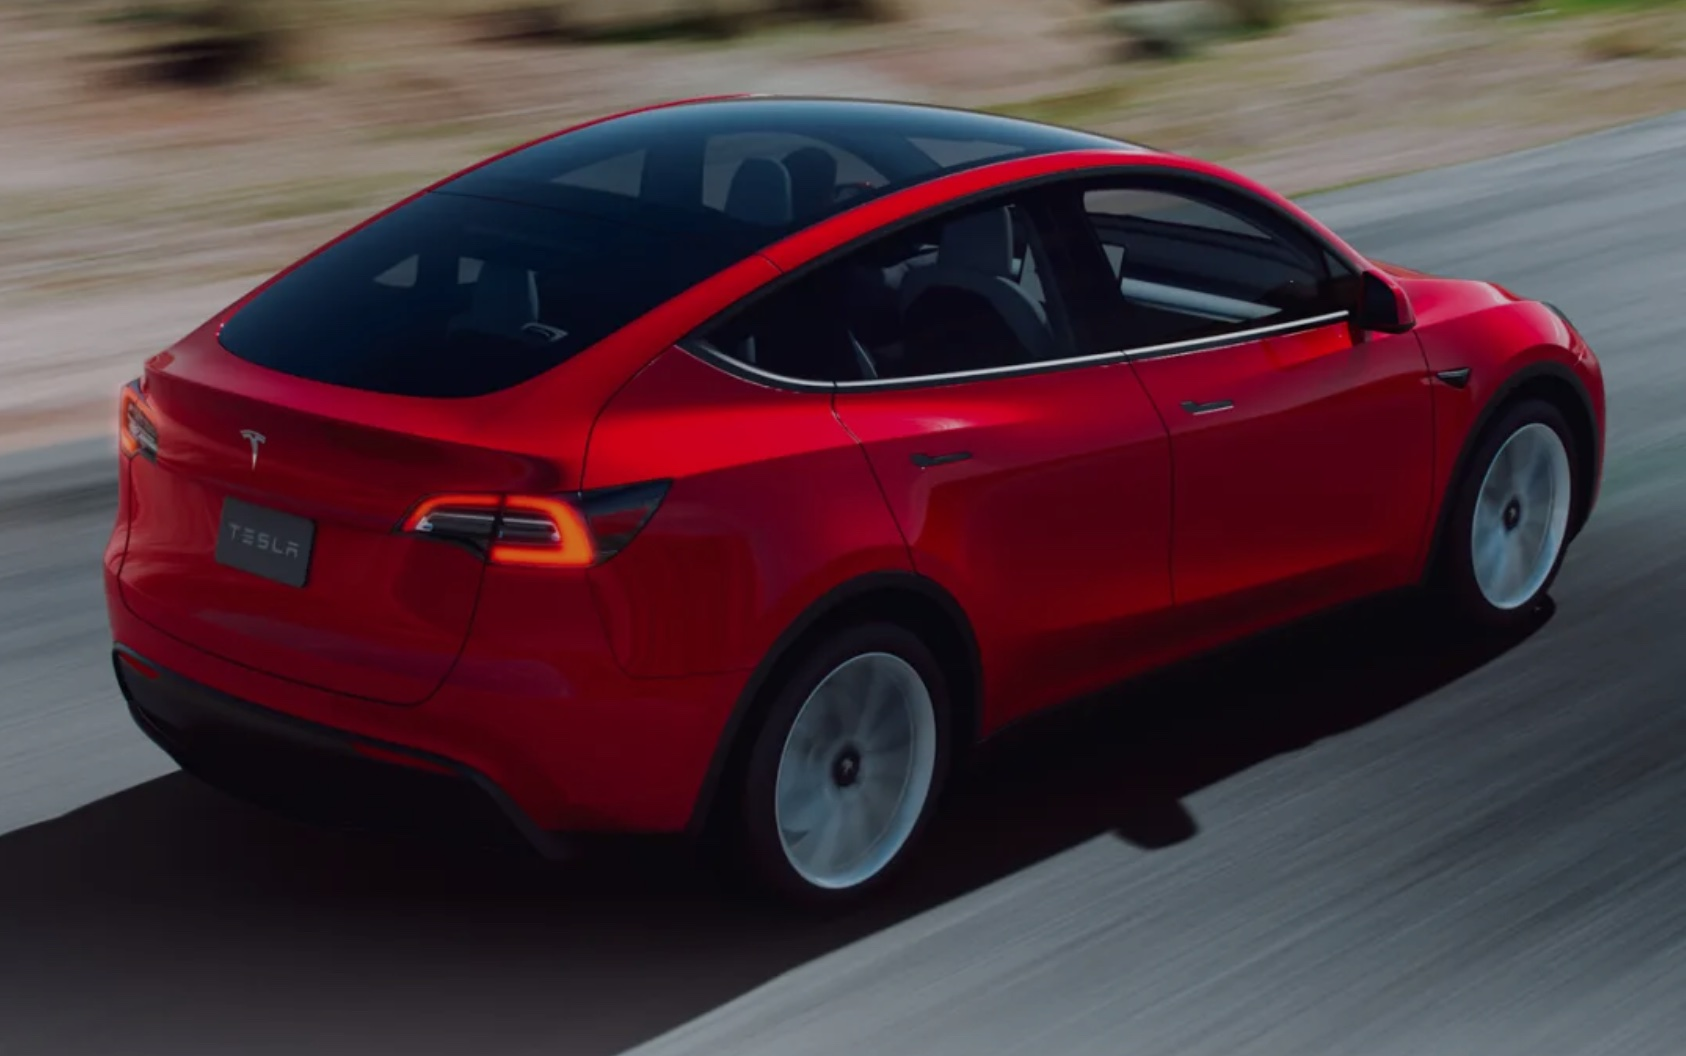 China-made entry-level Model Y expected to drop to RMB 275,000, analysts say-cnTechPost